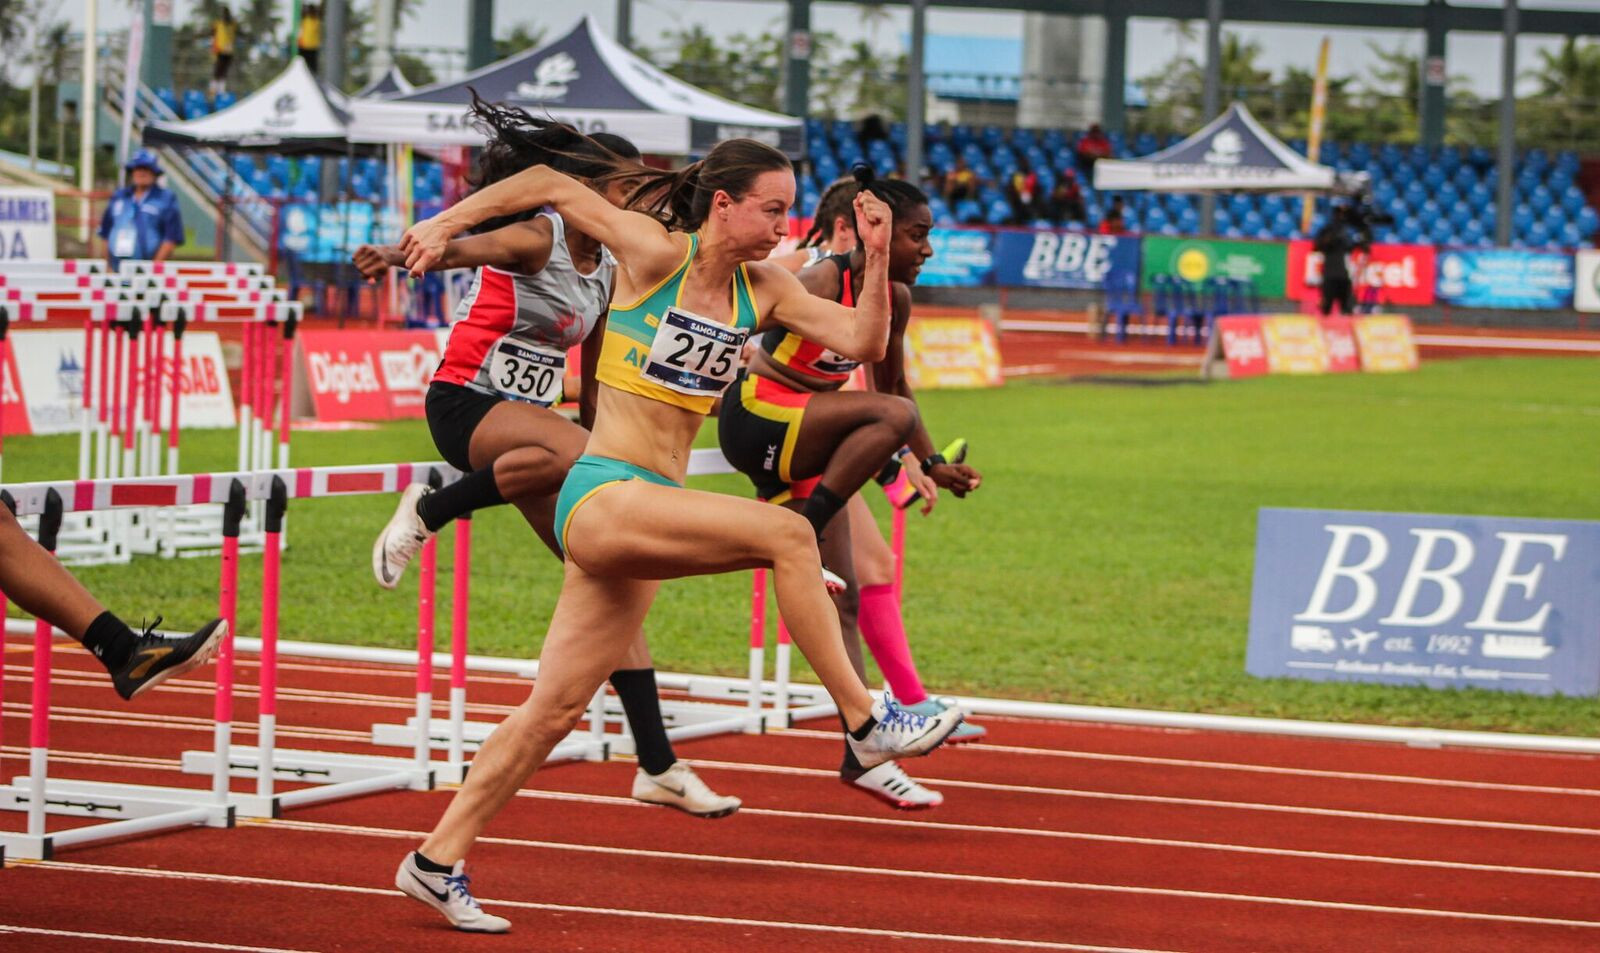 A new Pacific Games record was set in the women's 100m hurdles as Australia's Brianna Beahan won gold ©Samoa 2019